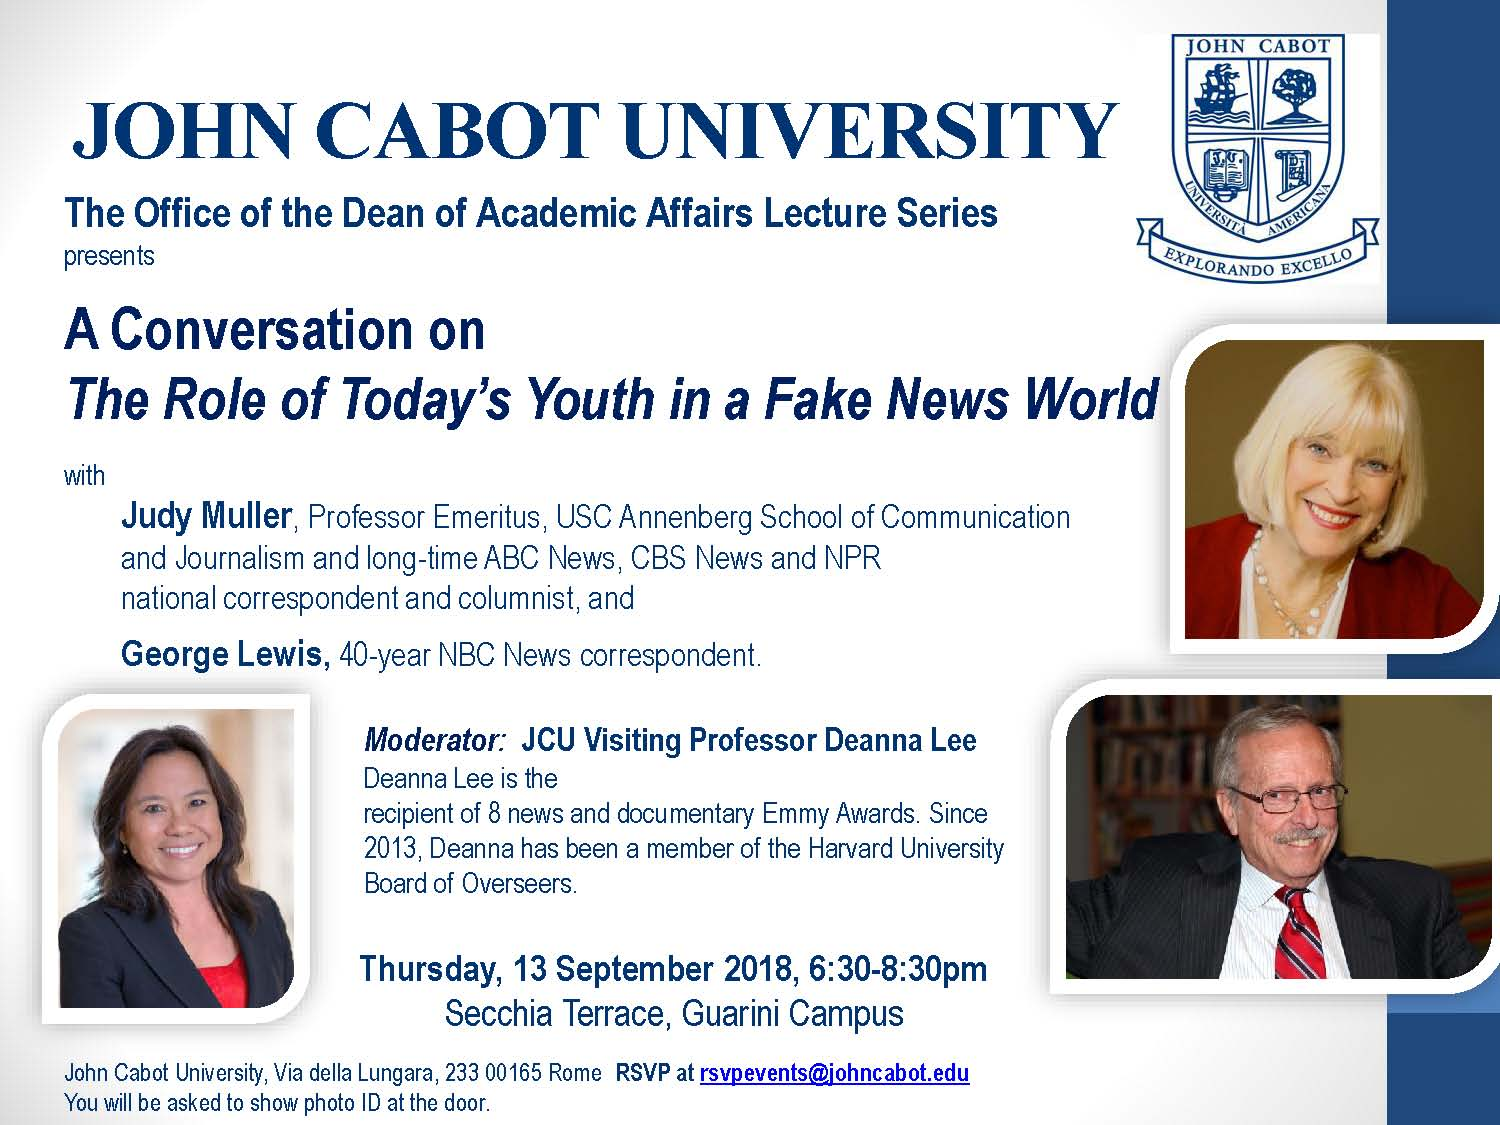 JCU Community Calendar - The Role of Today's Youth in a Fake